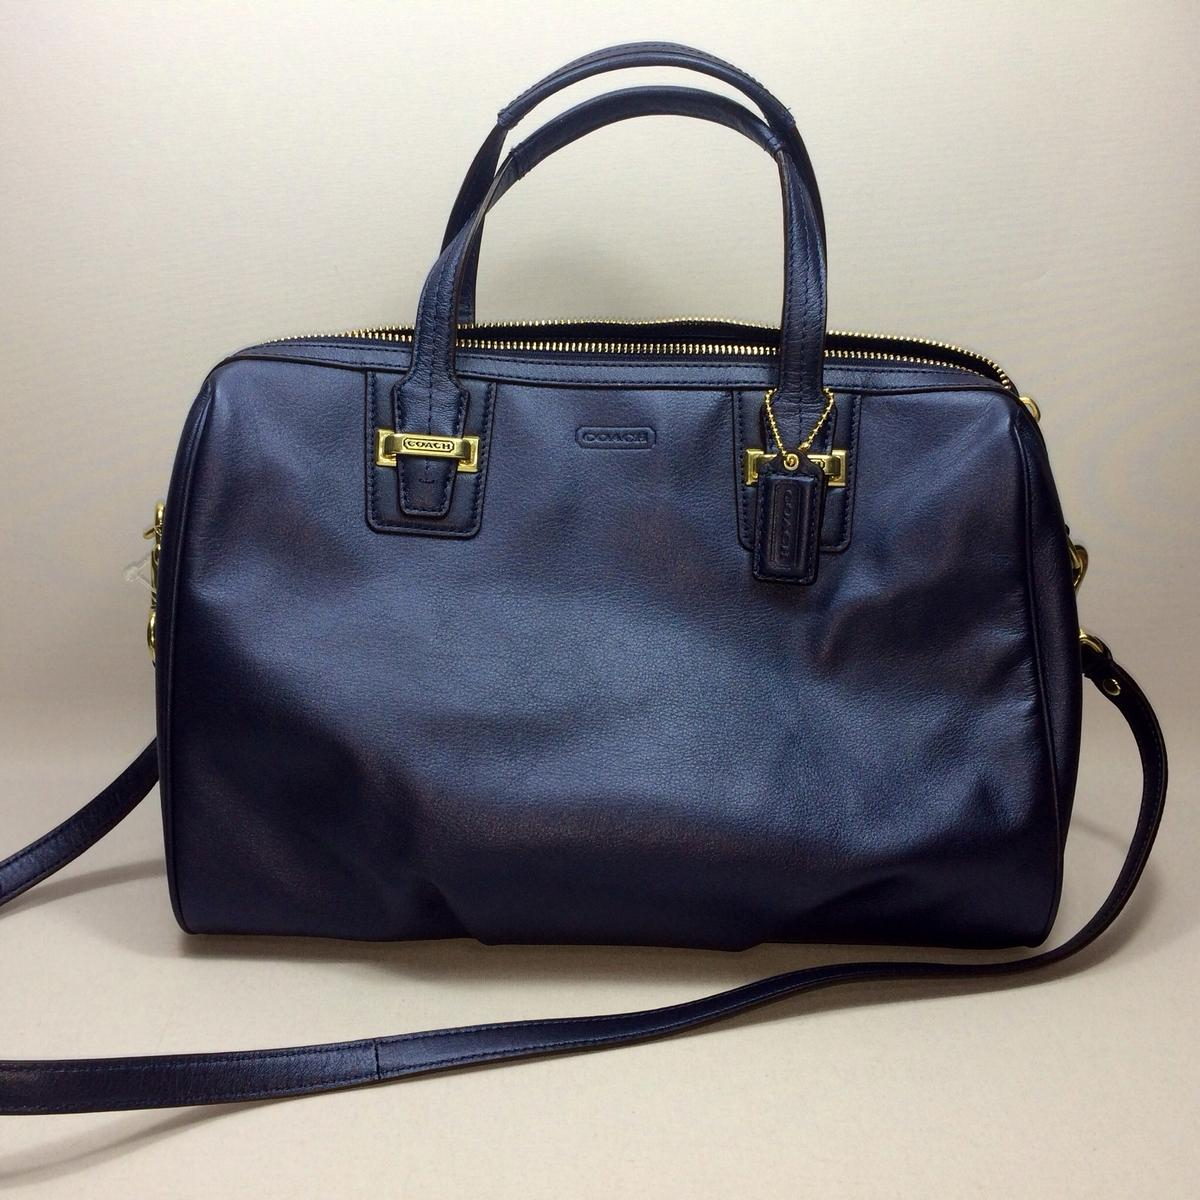 Home Coach Taylor Leather Satchel Crossbody Bag Midnight Blue